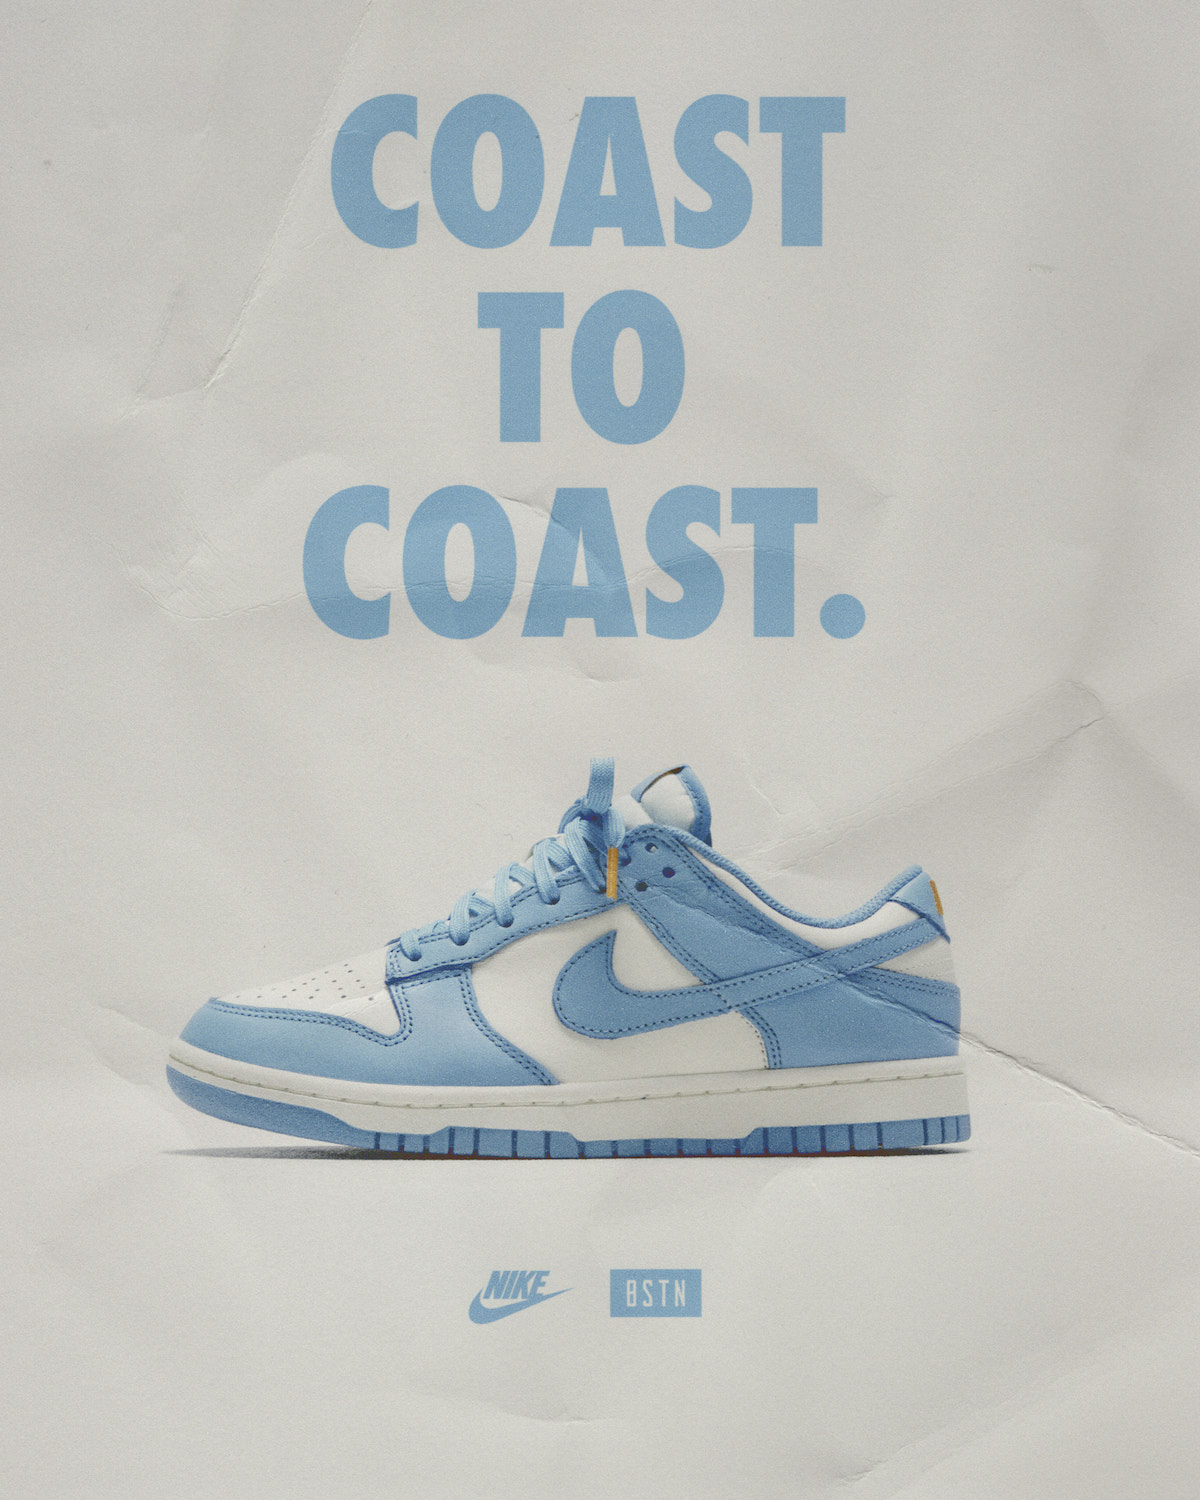 """The Nike Dunk Low """"Coast"""" releases at BSTN on Thursday, January 14th, alongside two other Dunk silhouettes, the WMNS Dunk High """"Football Grey"""" and the Nike Dunk High """"Vast Grey""""."""